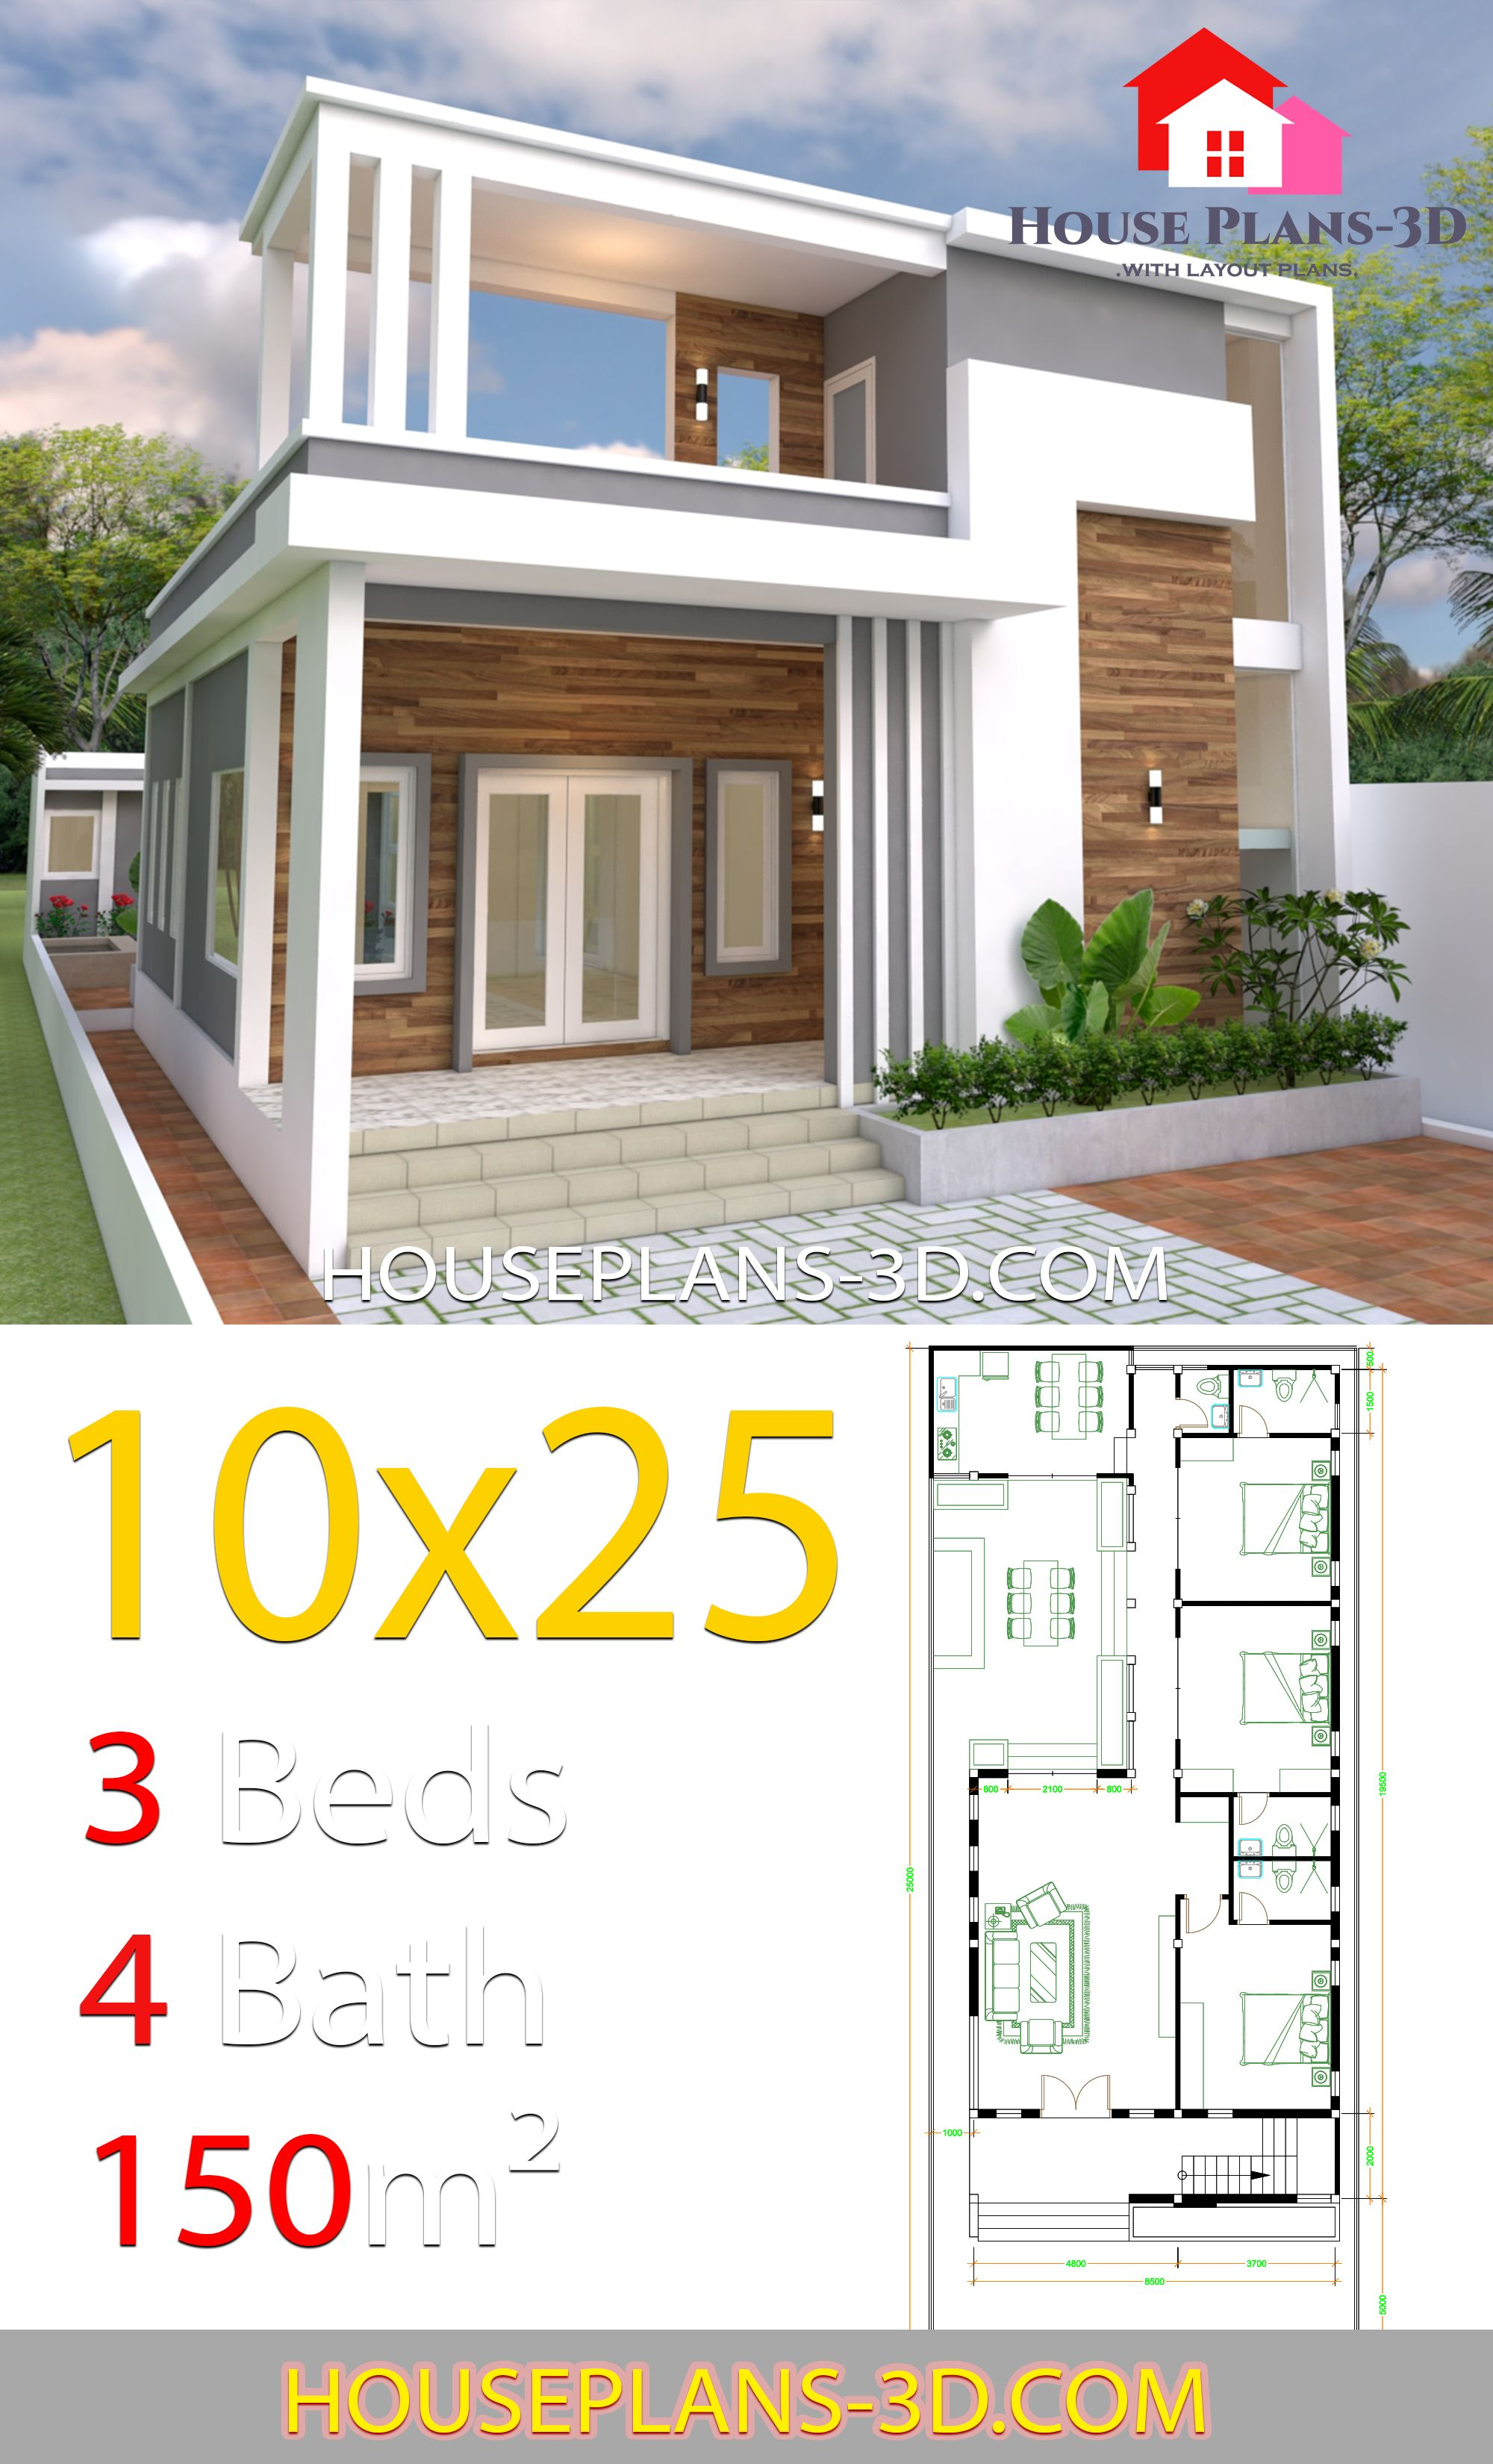 House Design Plans 10x25 With 3 Bedrooms House Plans 3d In 2020 Pool House Plans Small House Elevation Design Bungalow House Design